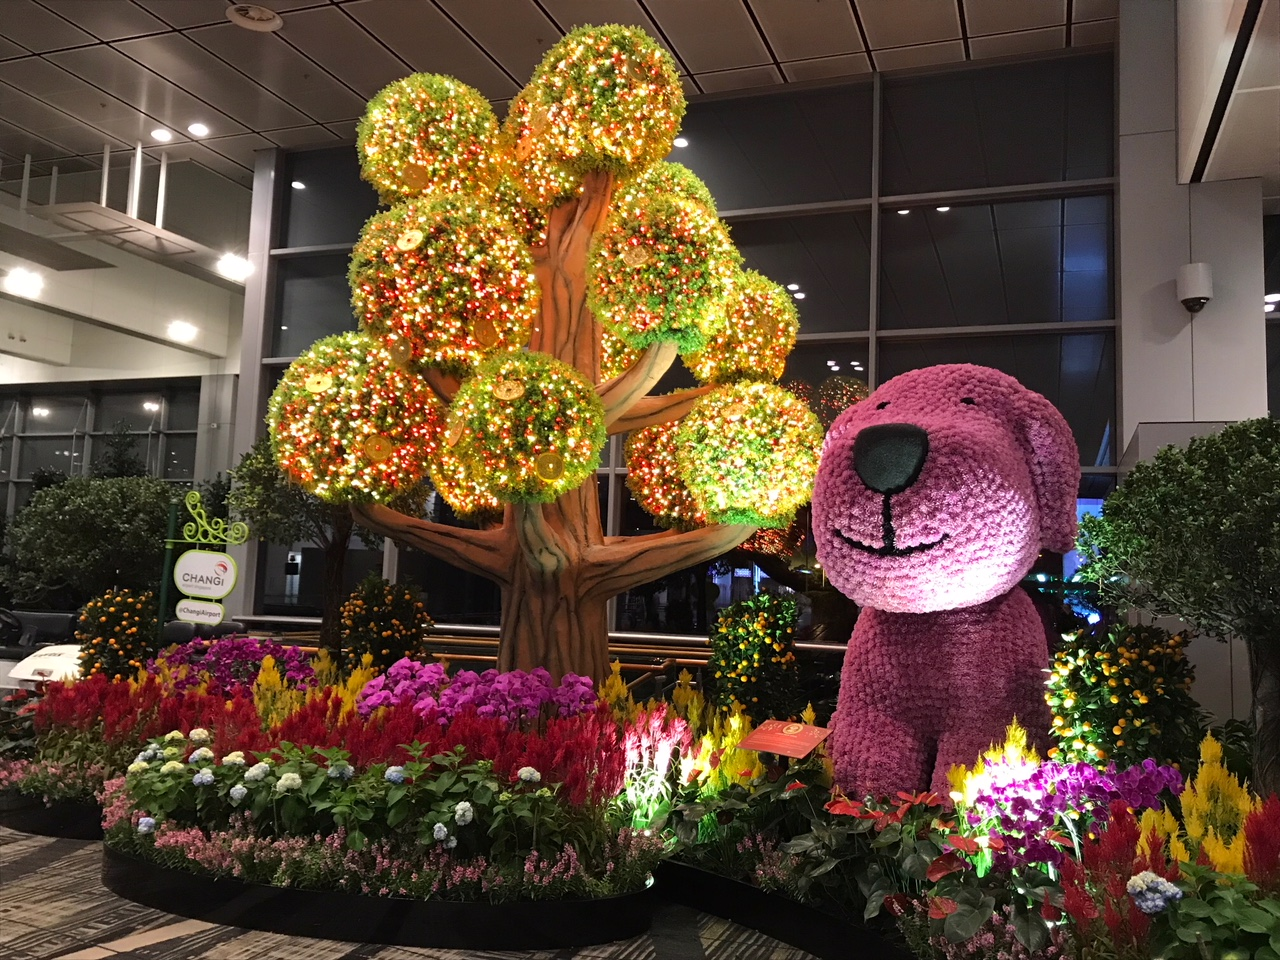 Lunar New Year decorations at Singapore Changi Airport. Hi, doggy!